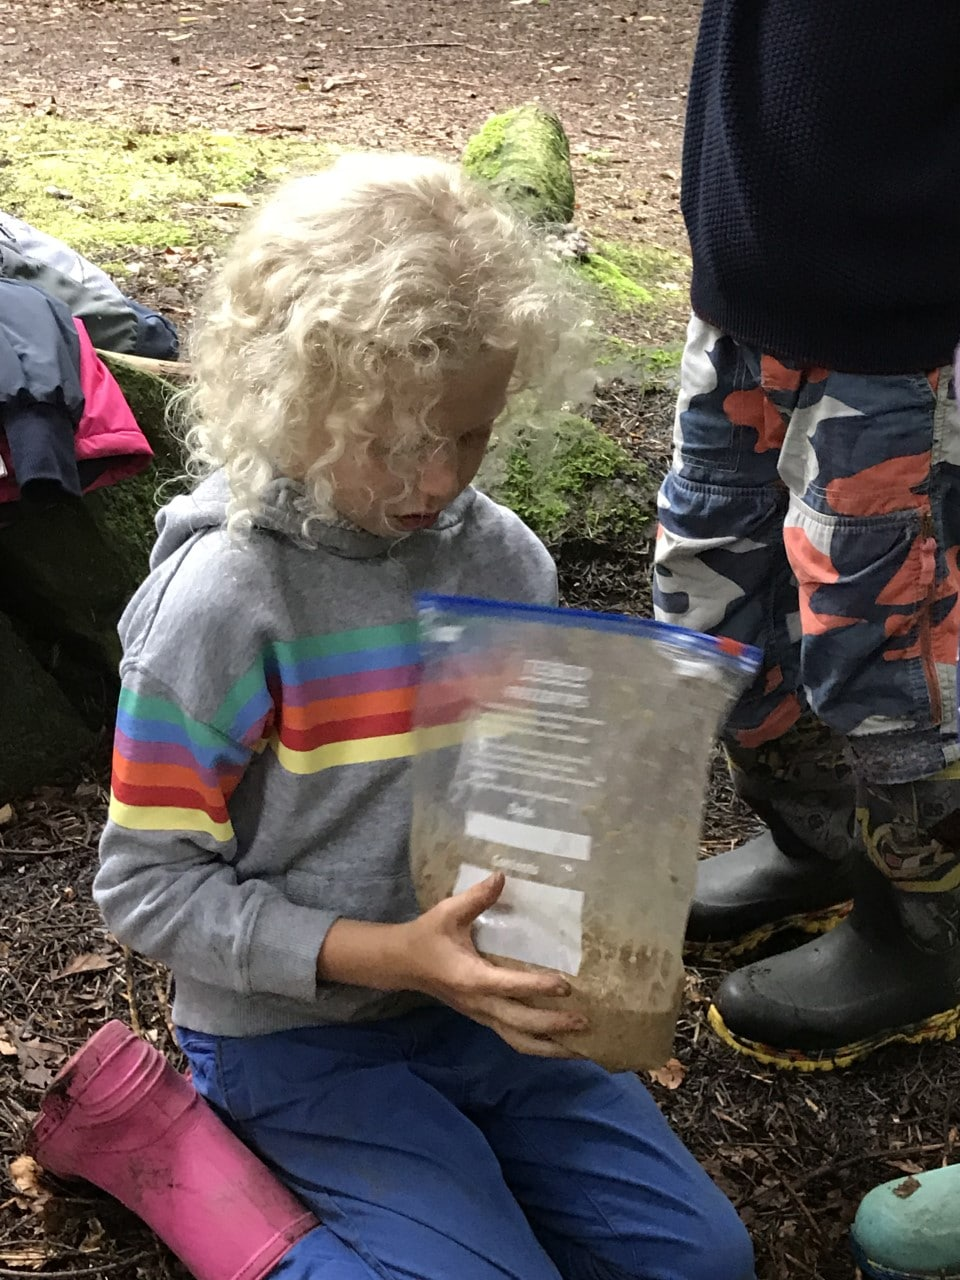 child mixing food and water in a bag